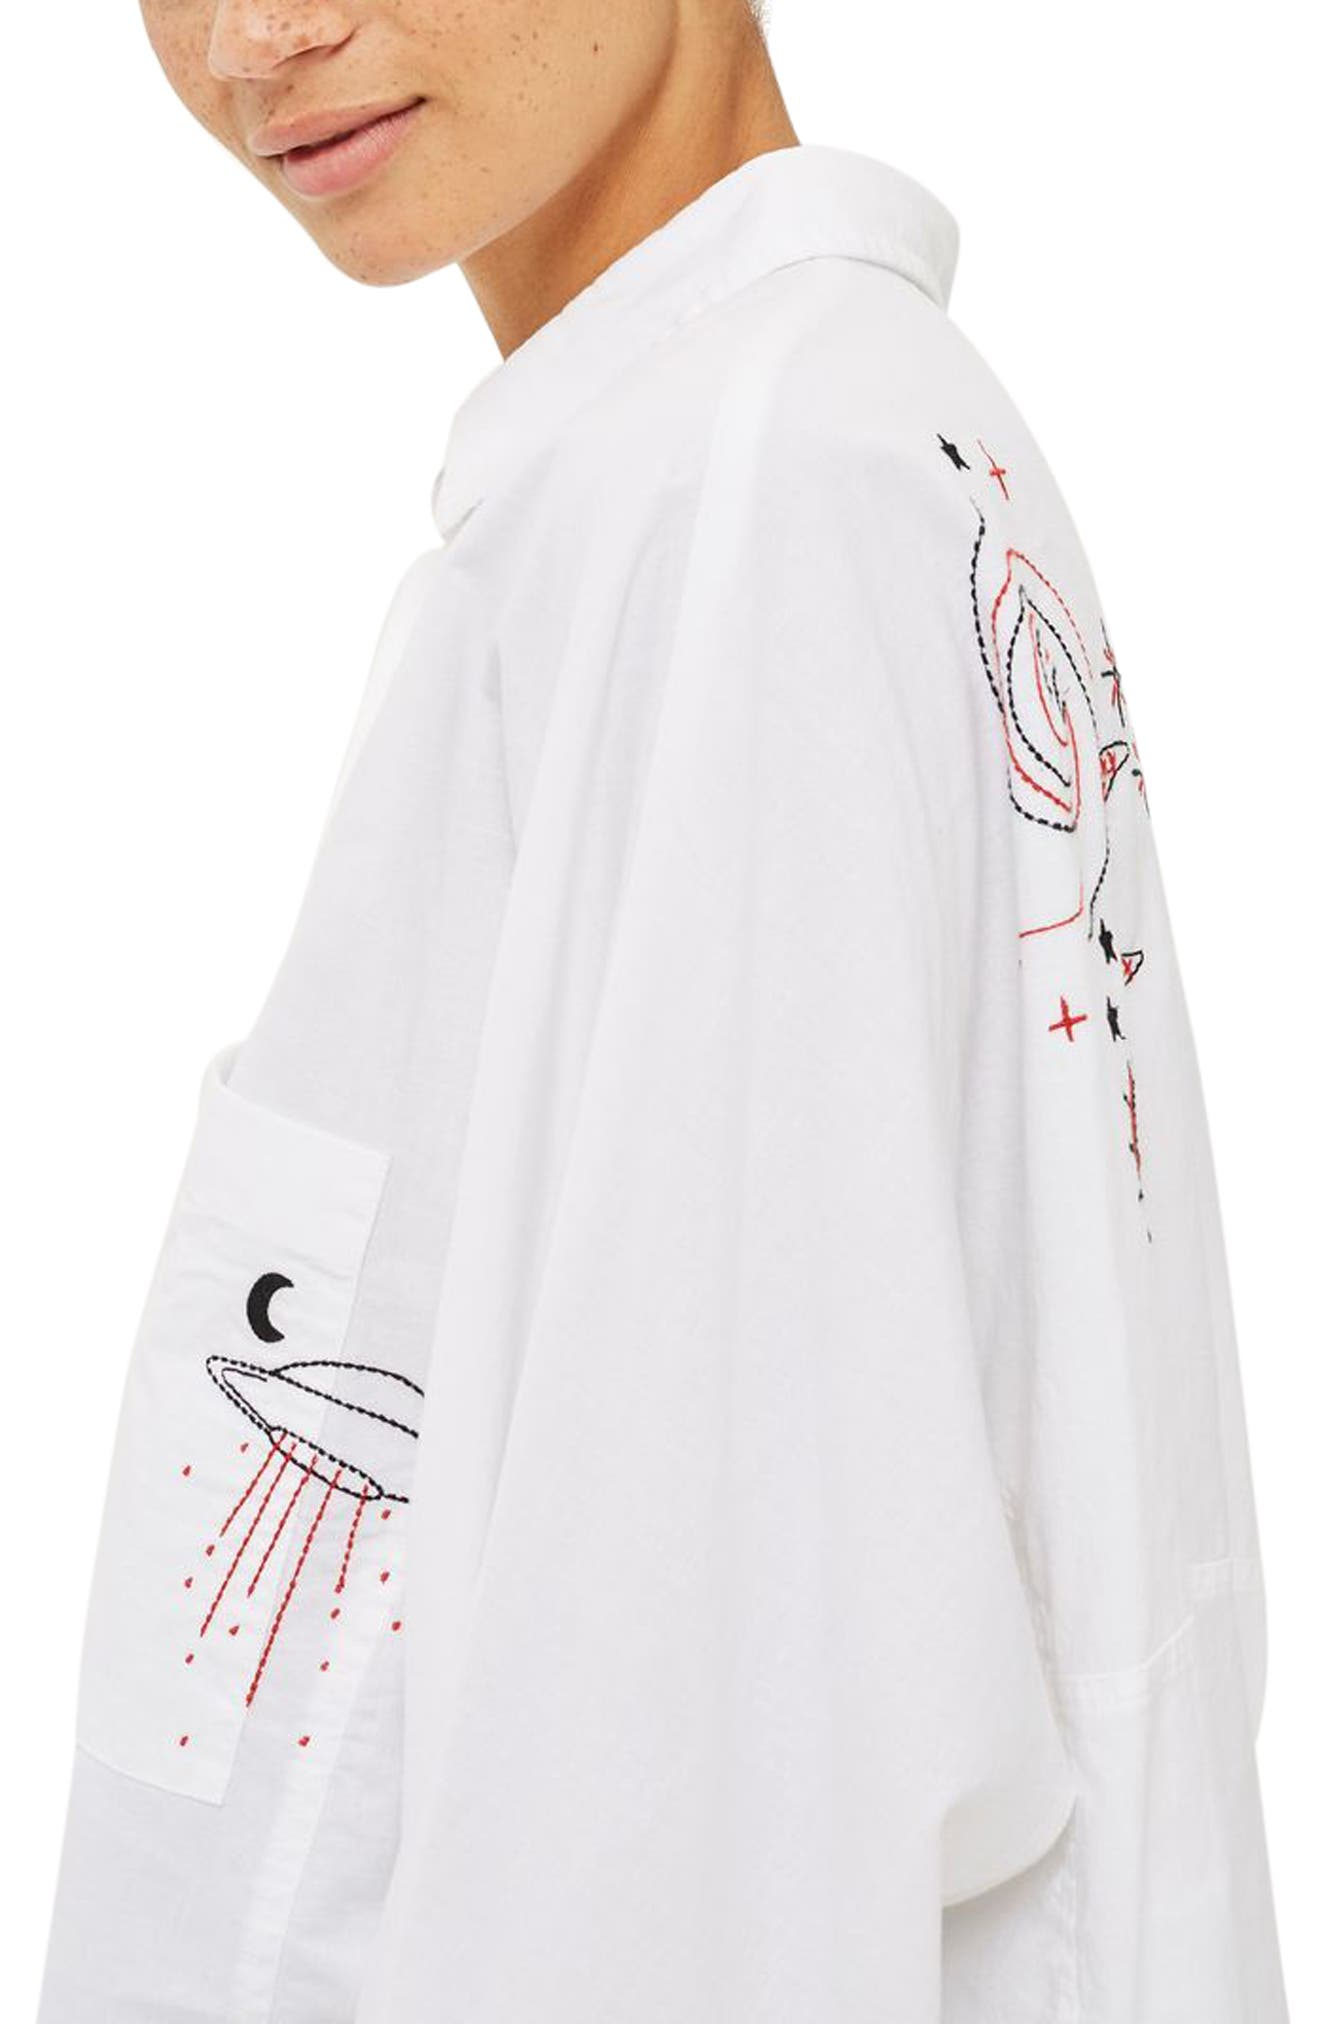 Doodle Believer Embroidered Shirt,                             Alternate thumbnail 3, color,                             900